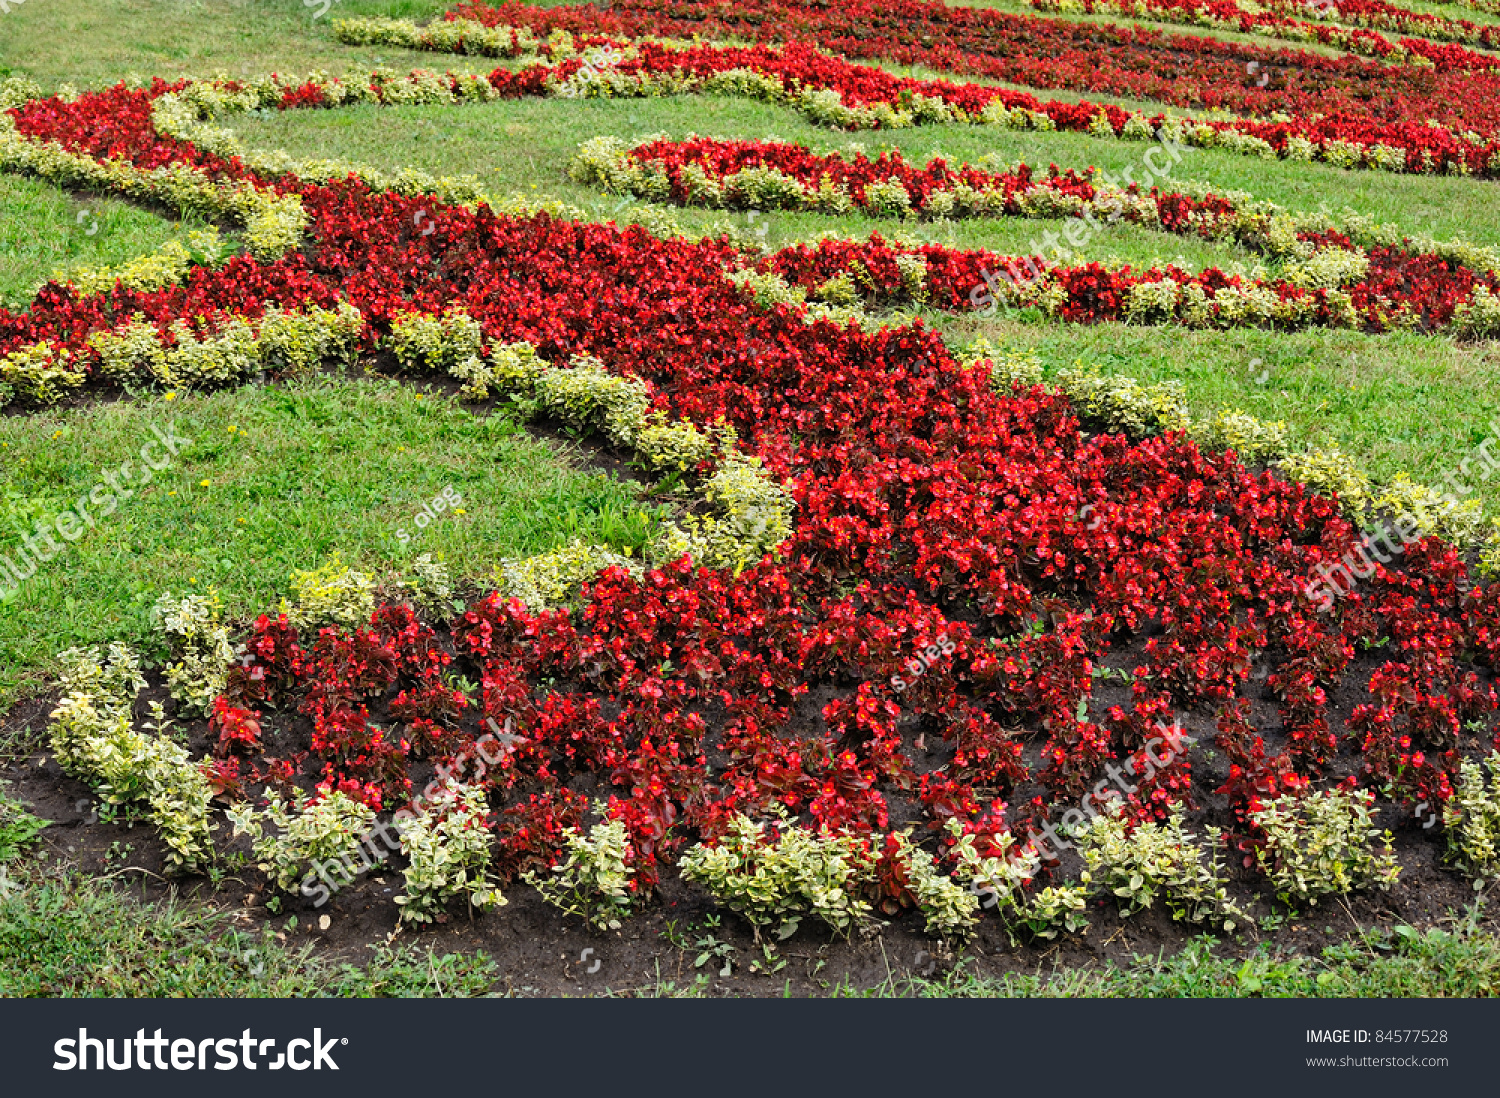 Ornamental grass with red flowers stock photo 84577528 for Ornamental grass with red flowers